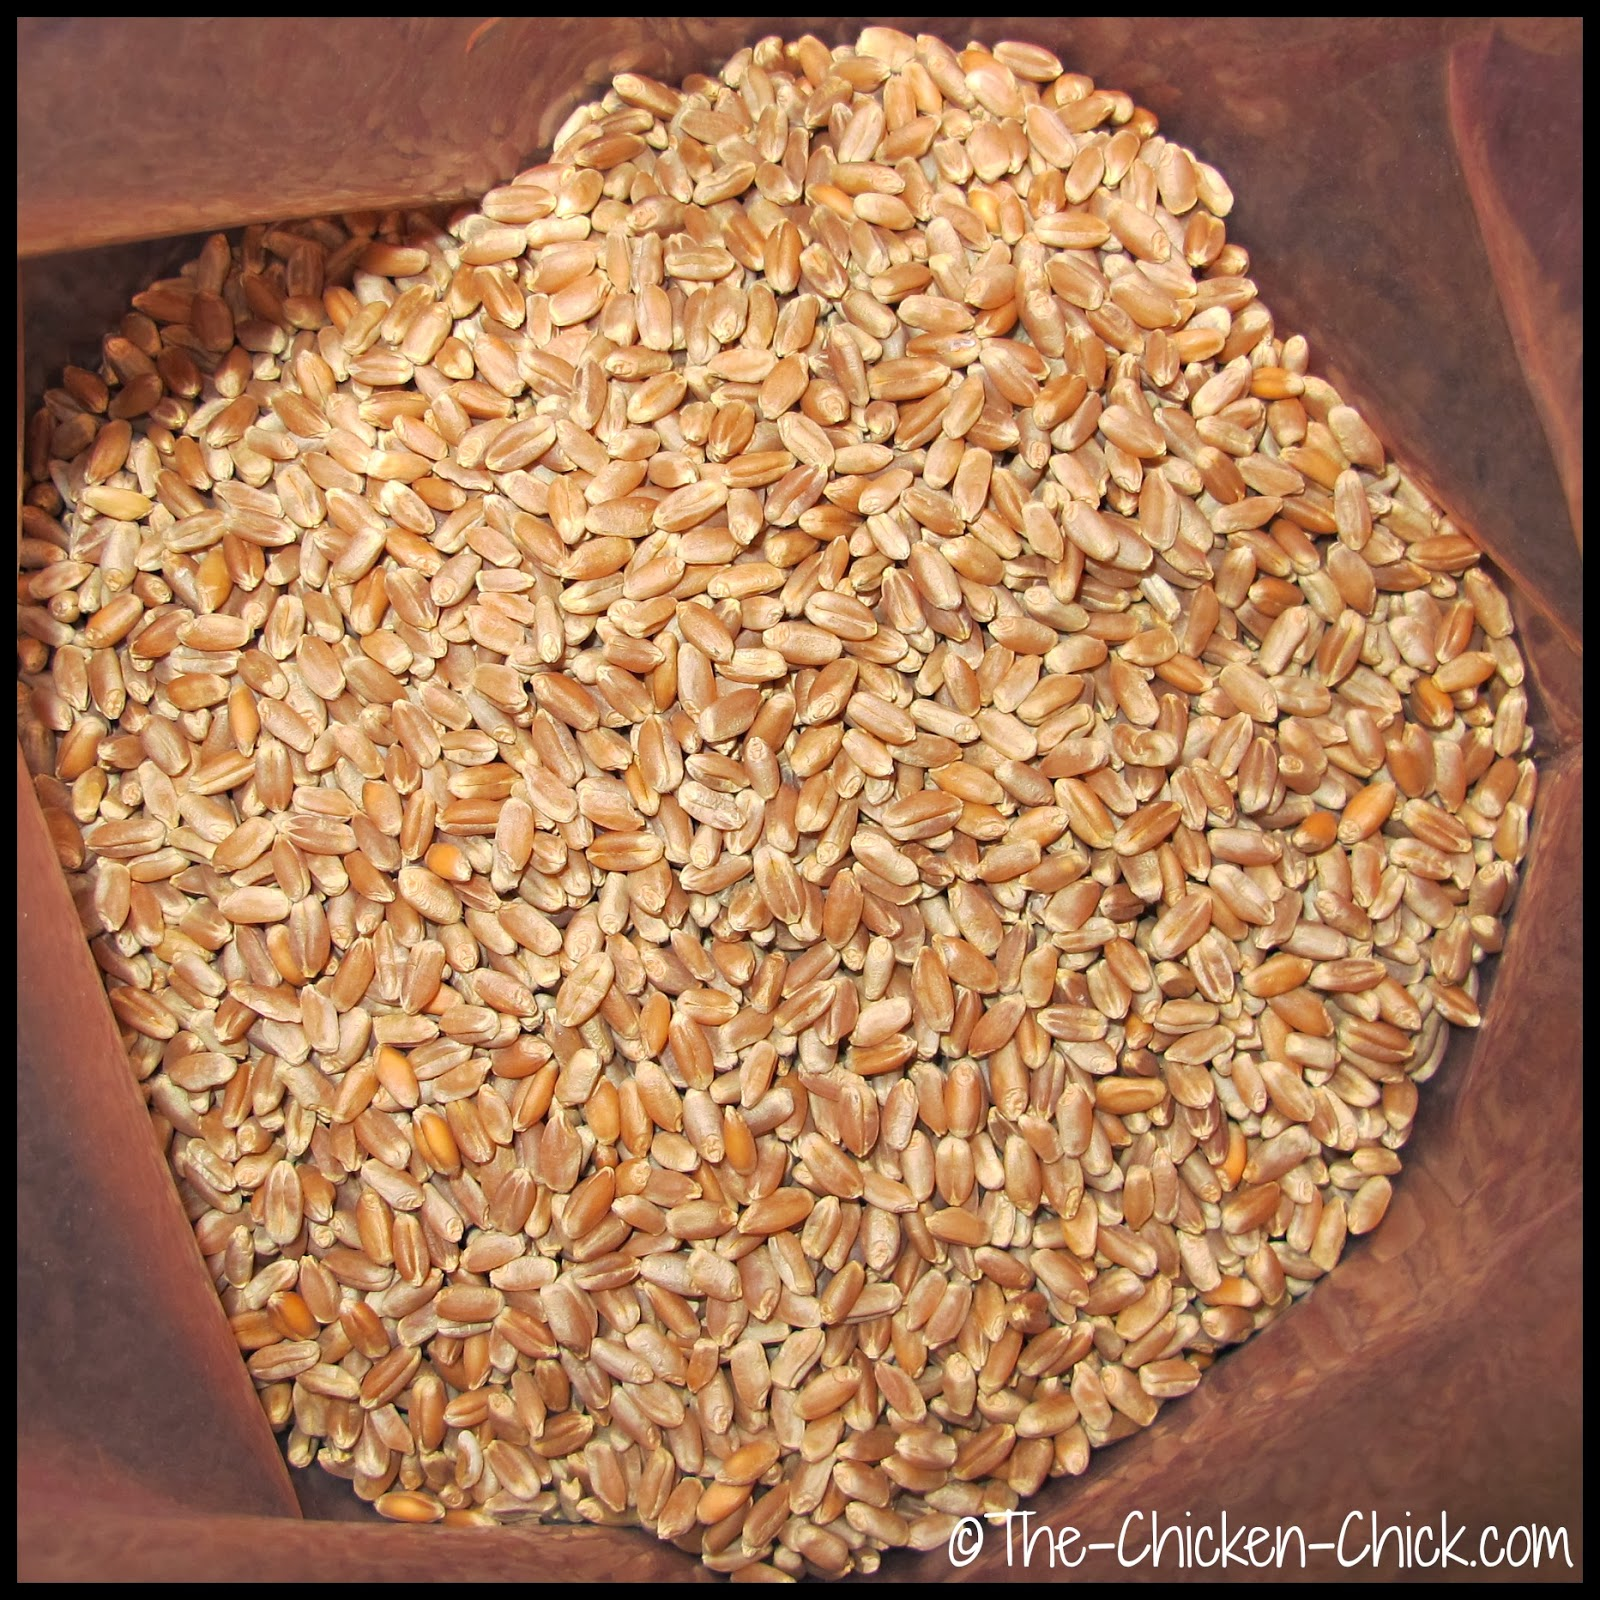 Wheat is one of the most common and easily sprouted grains for chicken fodder